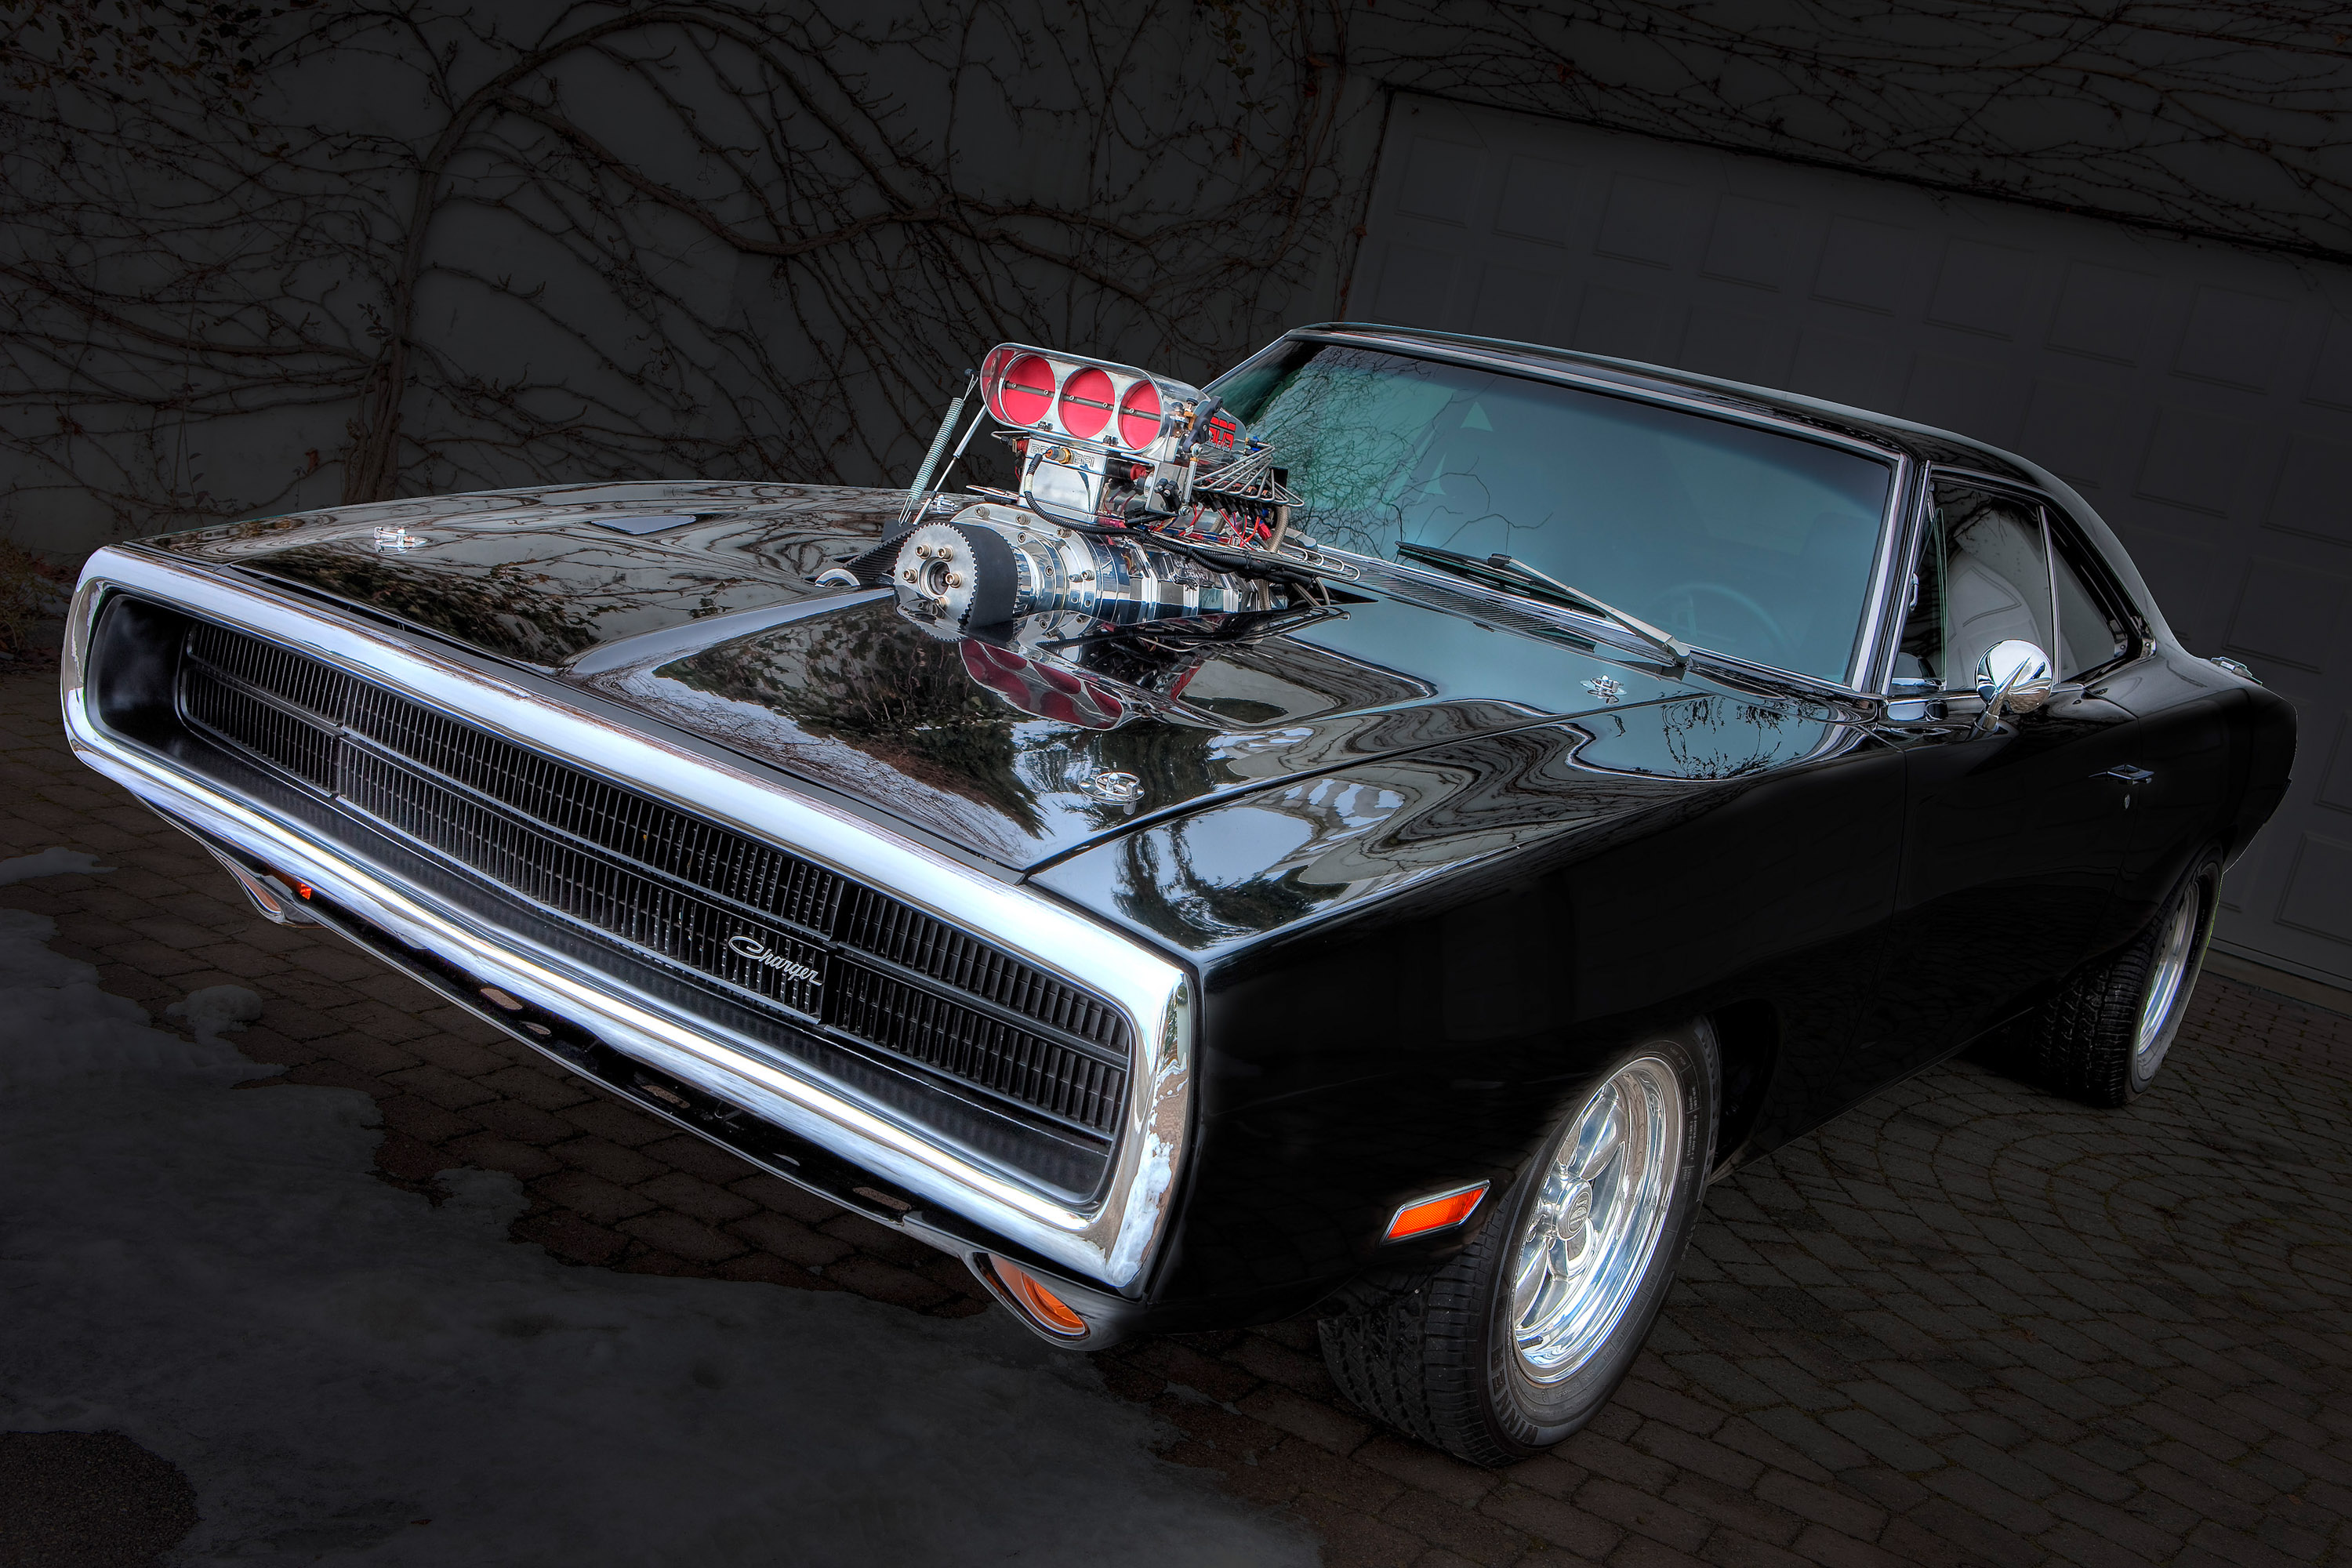 1970 Dodge Charger Fast And Furious 6